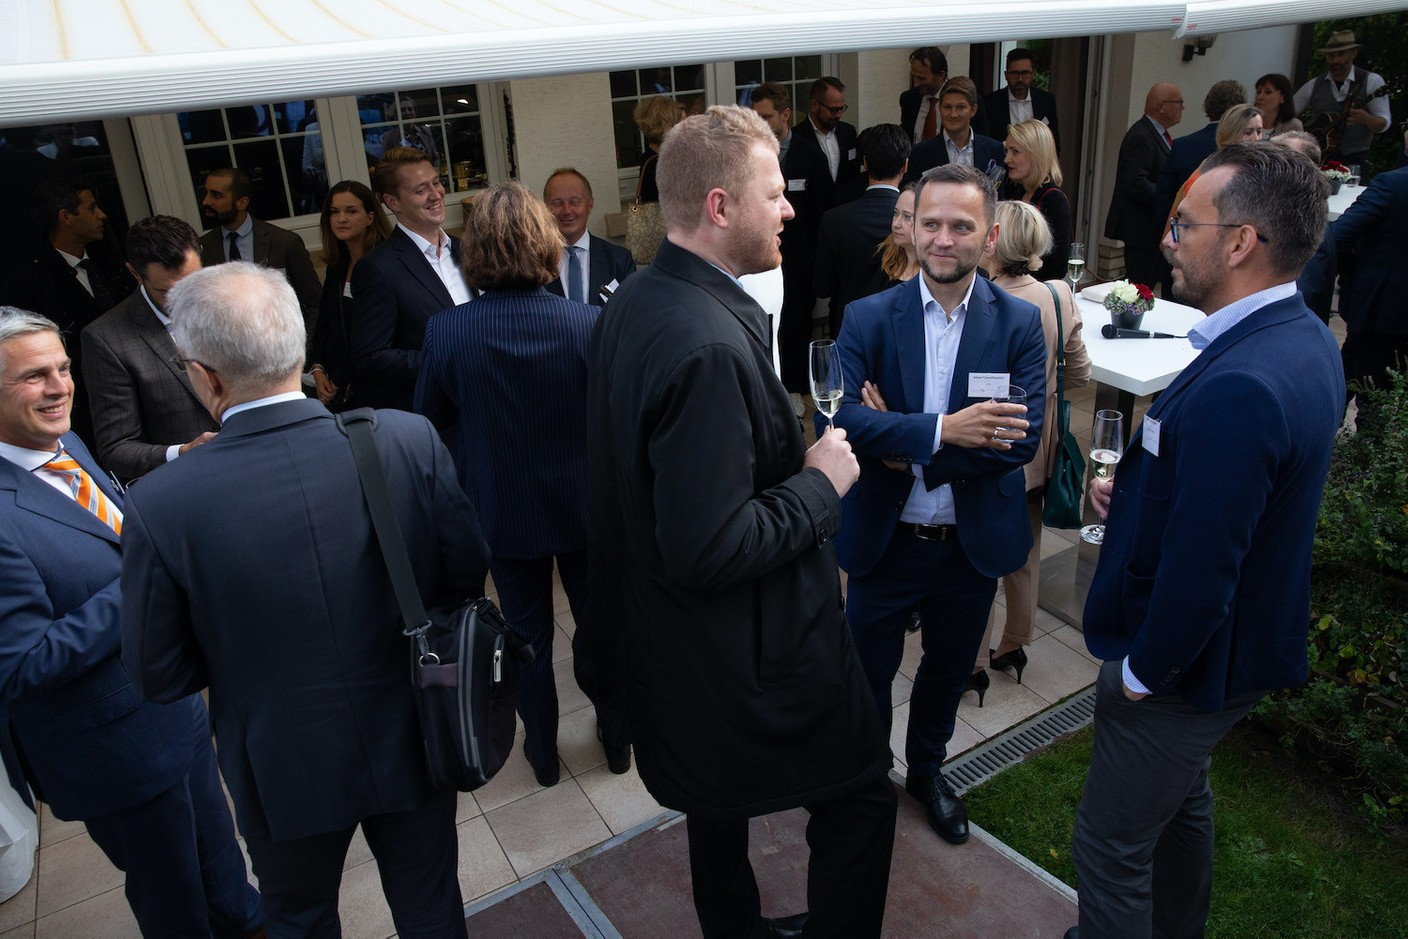 The Polish ambassador to Luxembourg hosted the event at his residence  Luxembourg-Poland Chamber of Commerce